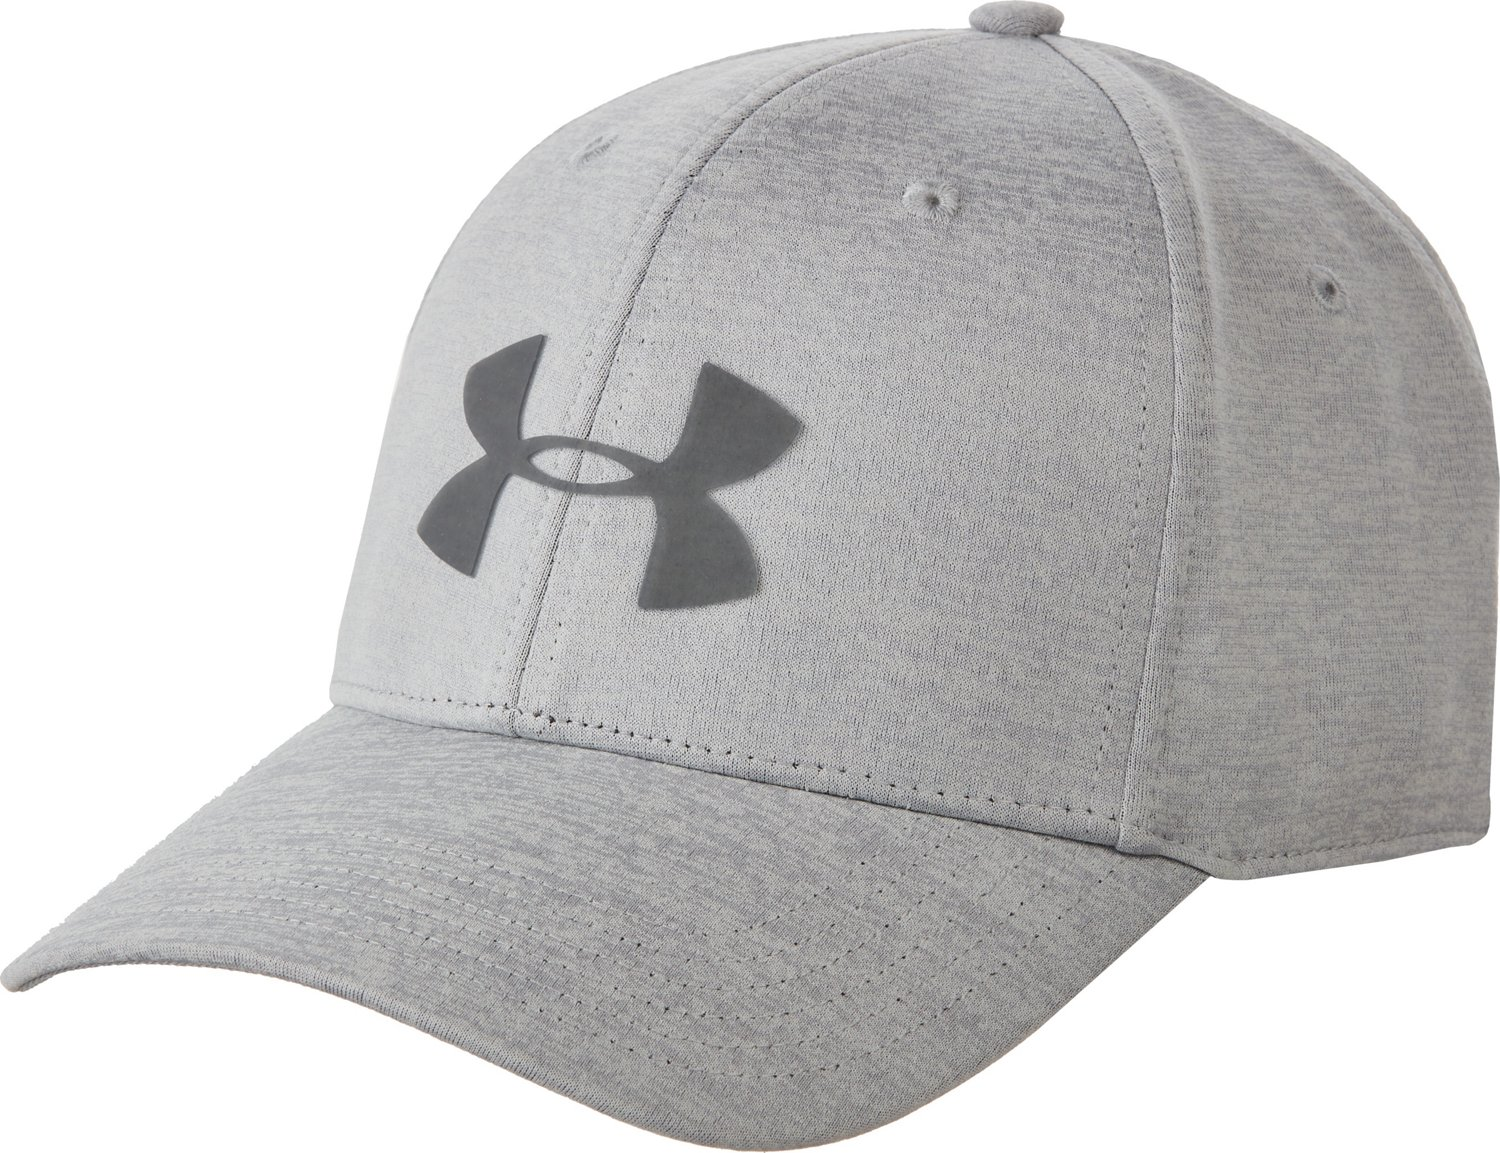 ffb35173c Display product reviews for Under Armour Men s Twist Closer 2 Training Cap